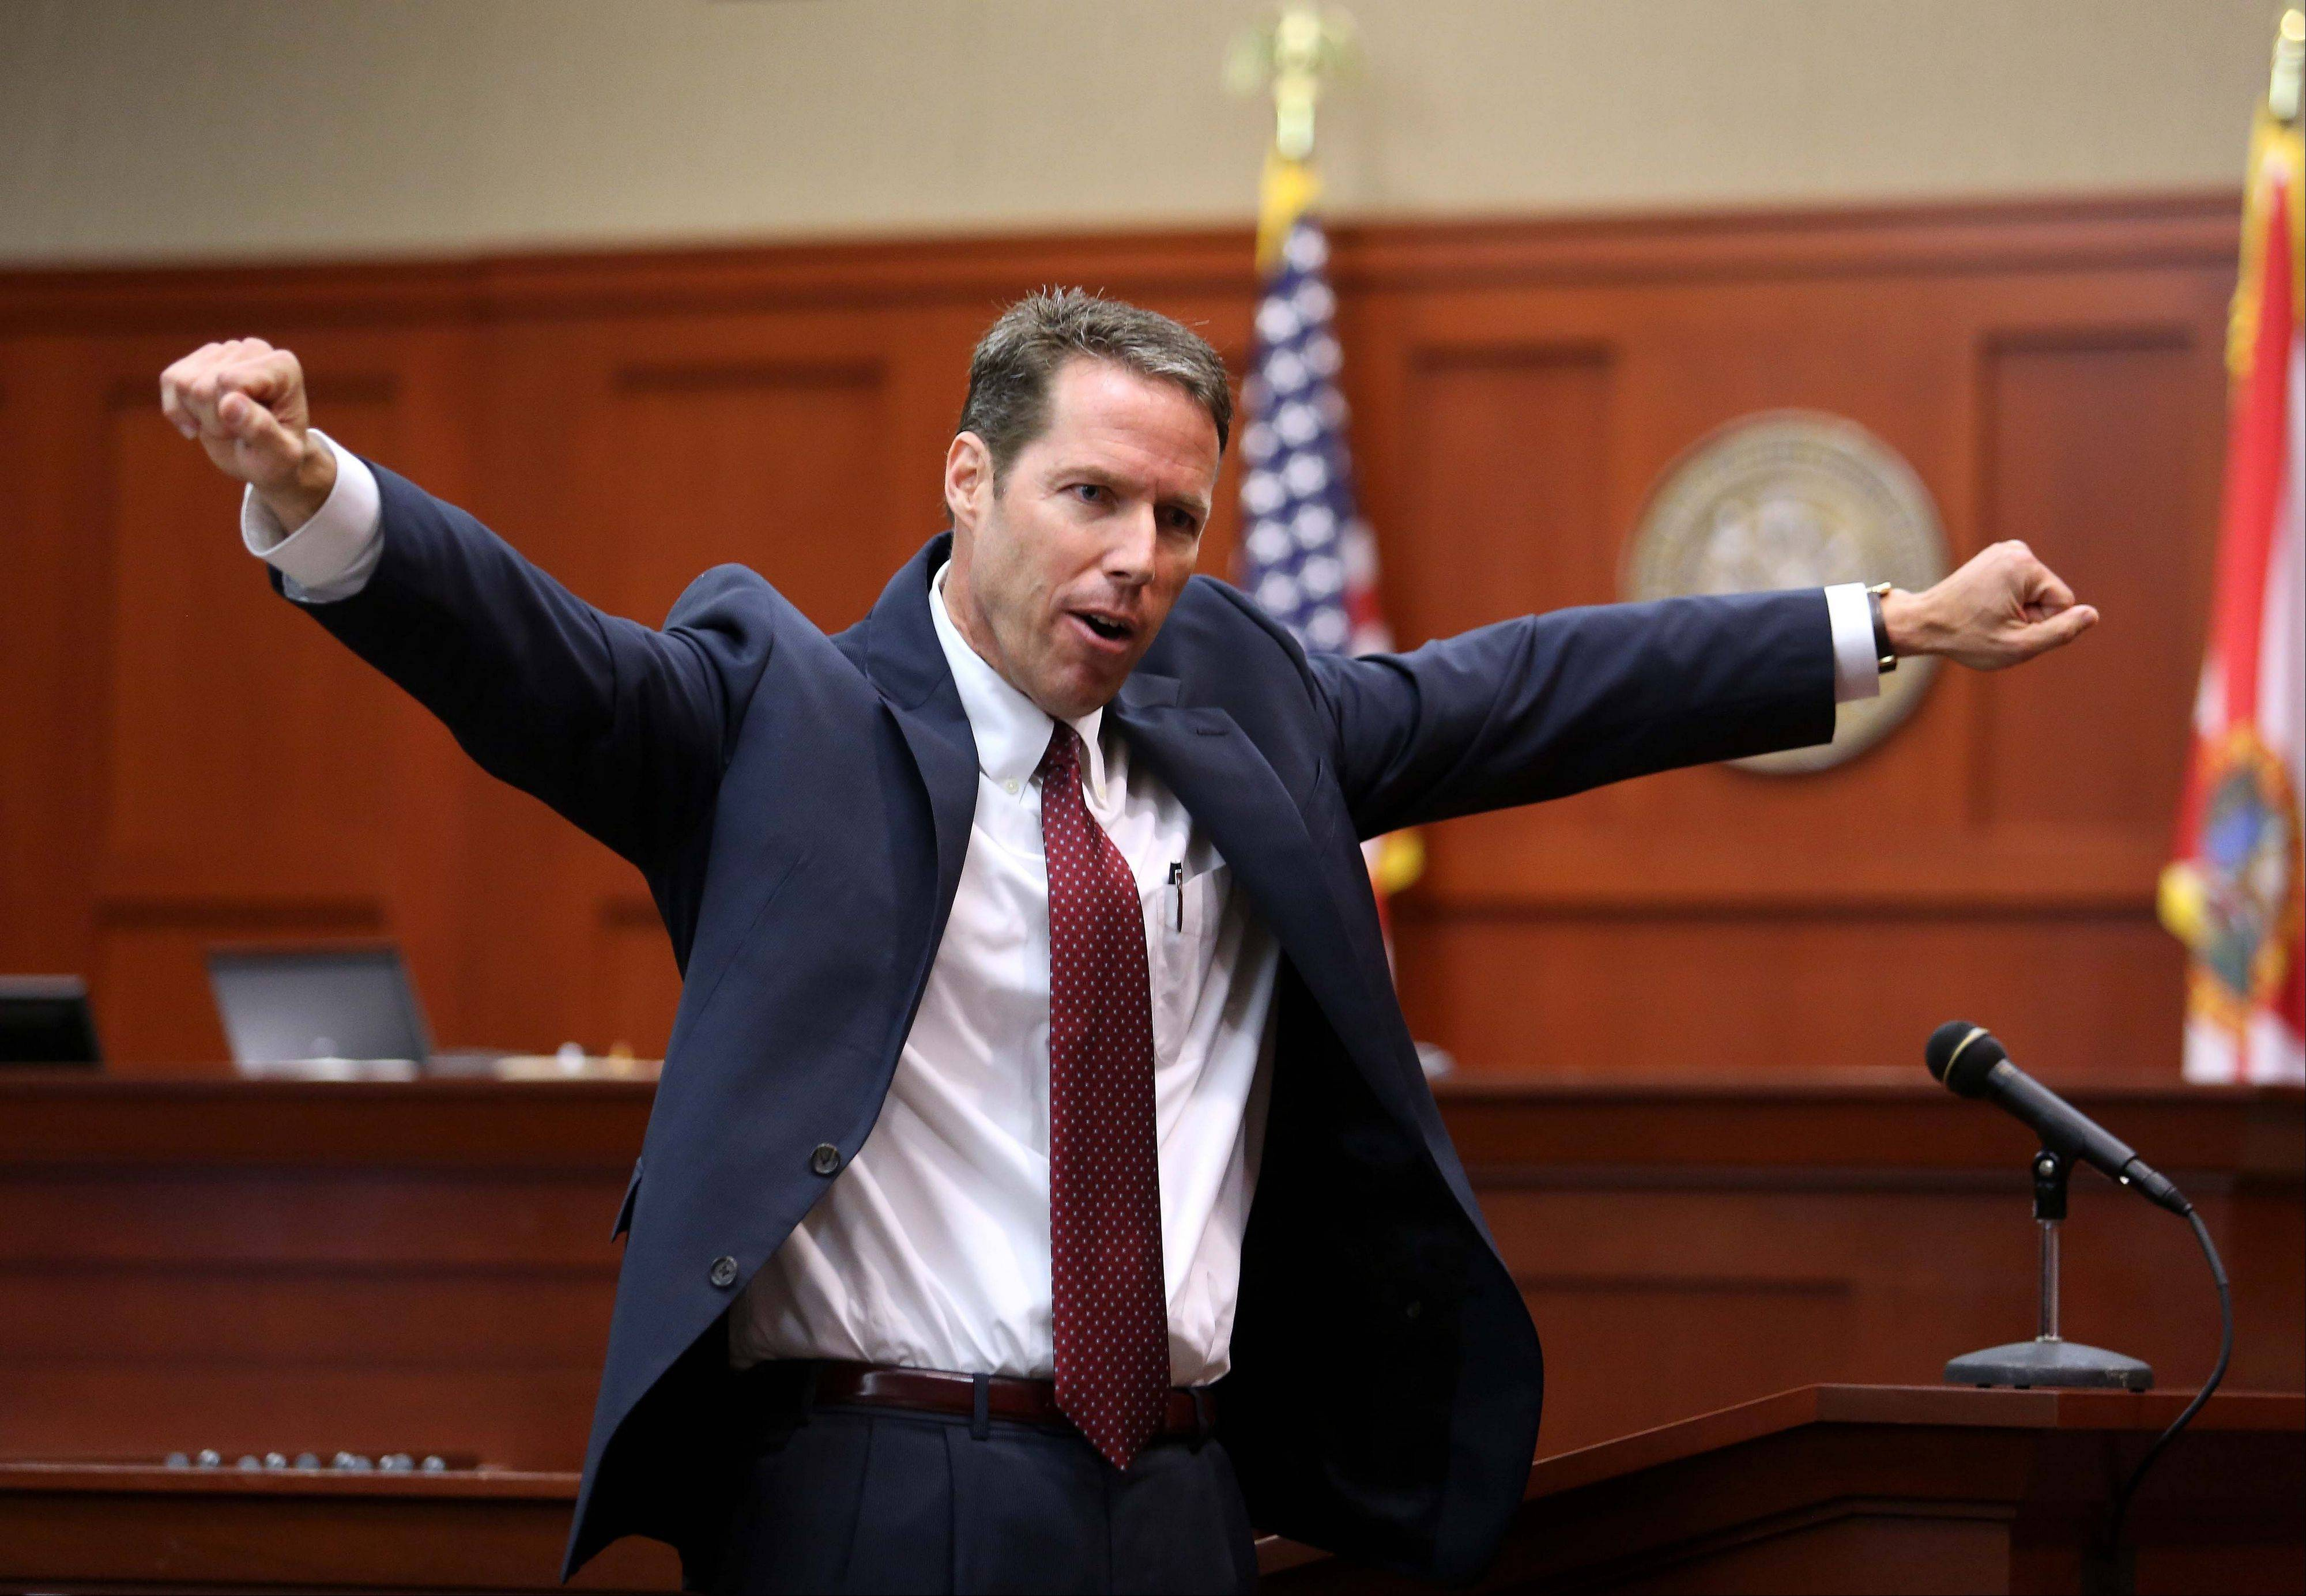 Assistant State Attorney John Guy gestures during his opening statement in George Zimmerman's trial